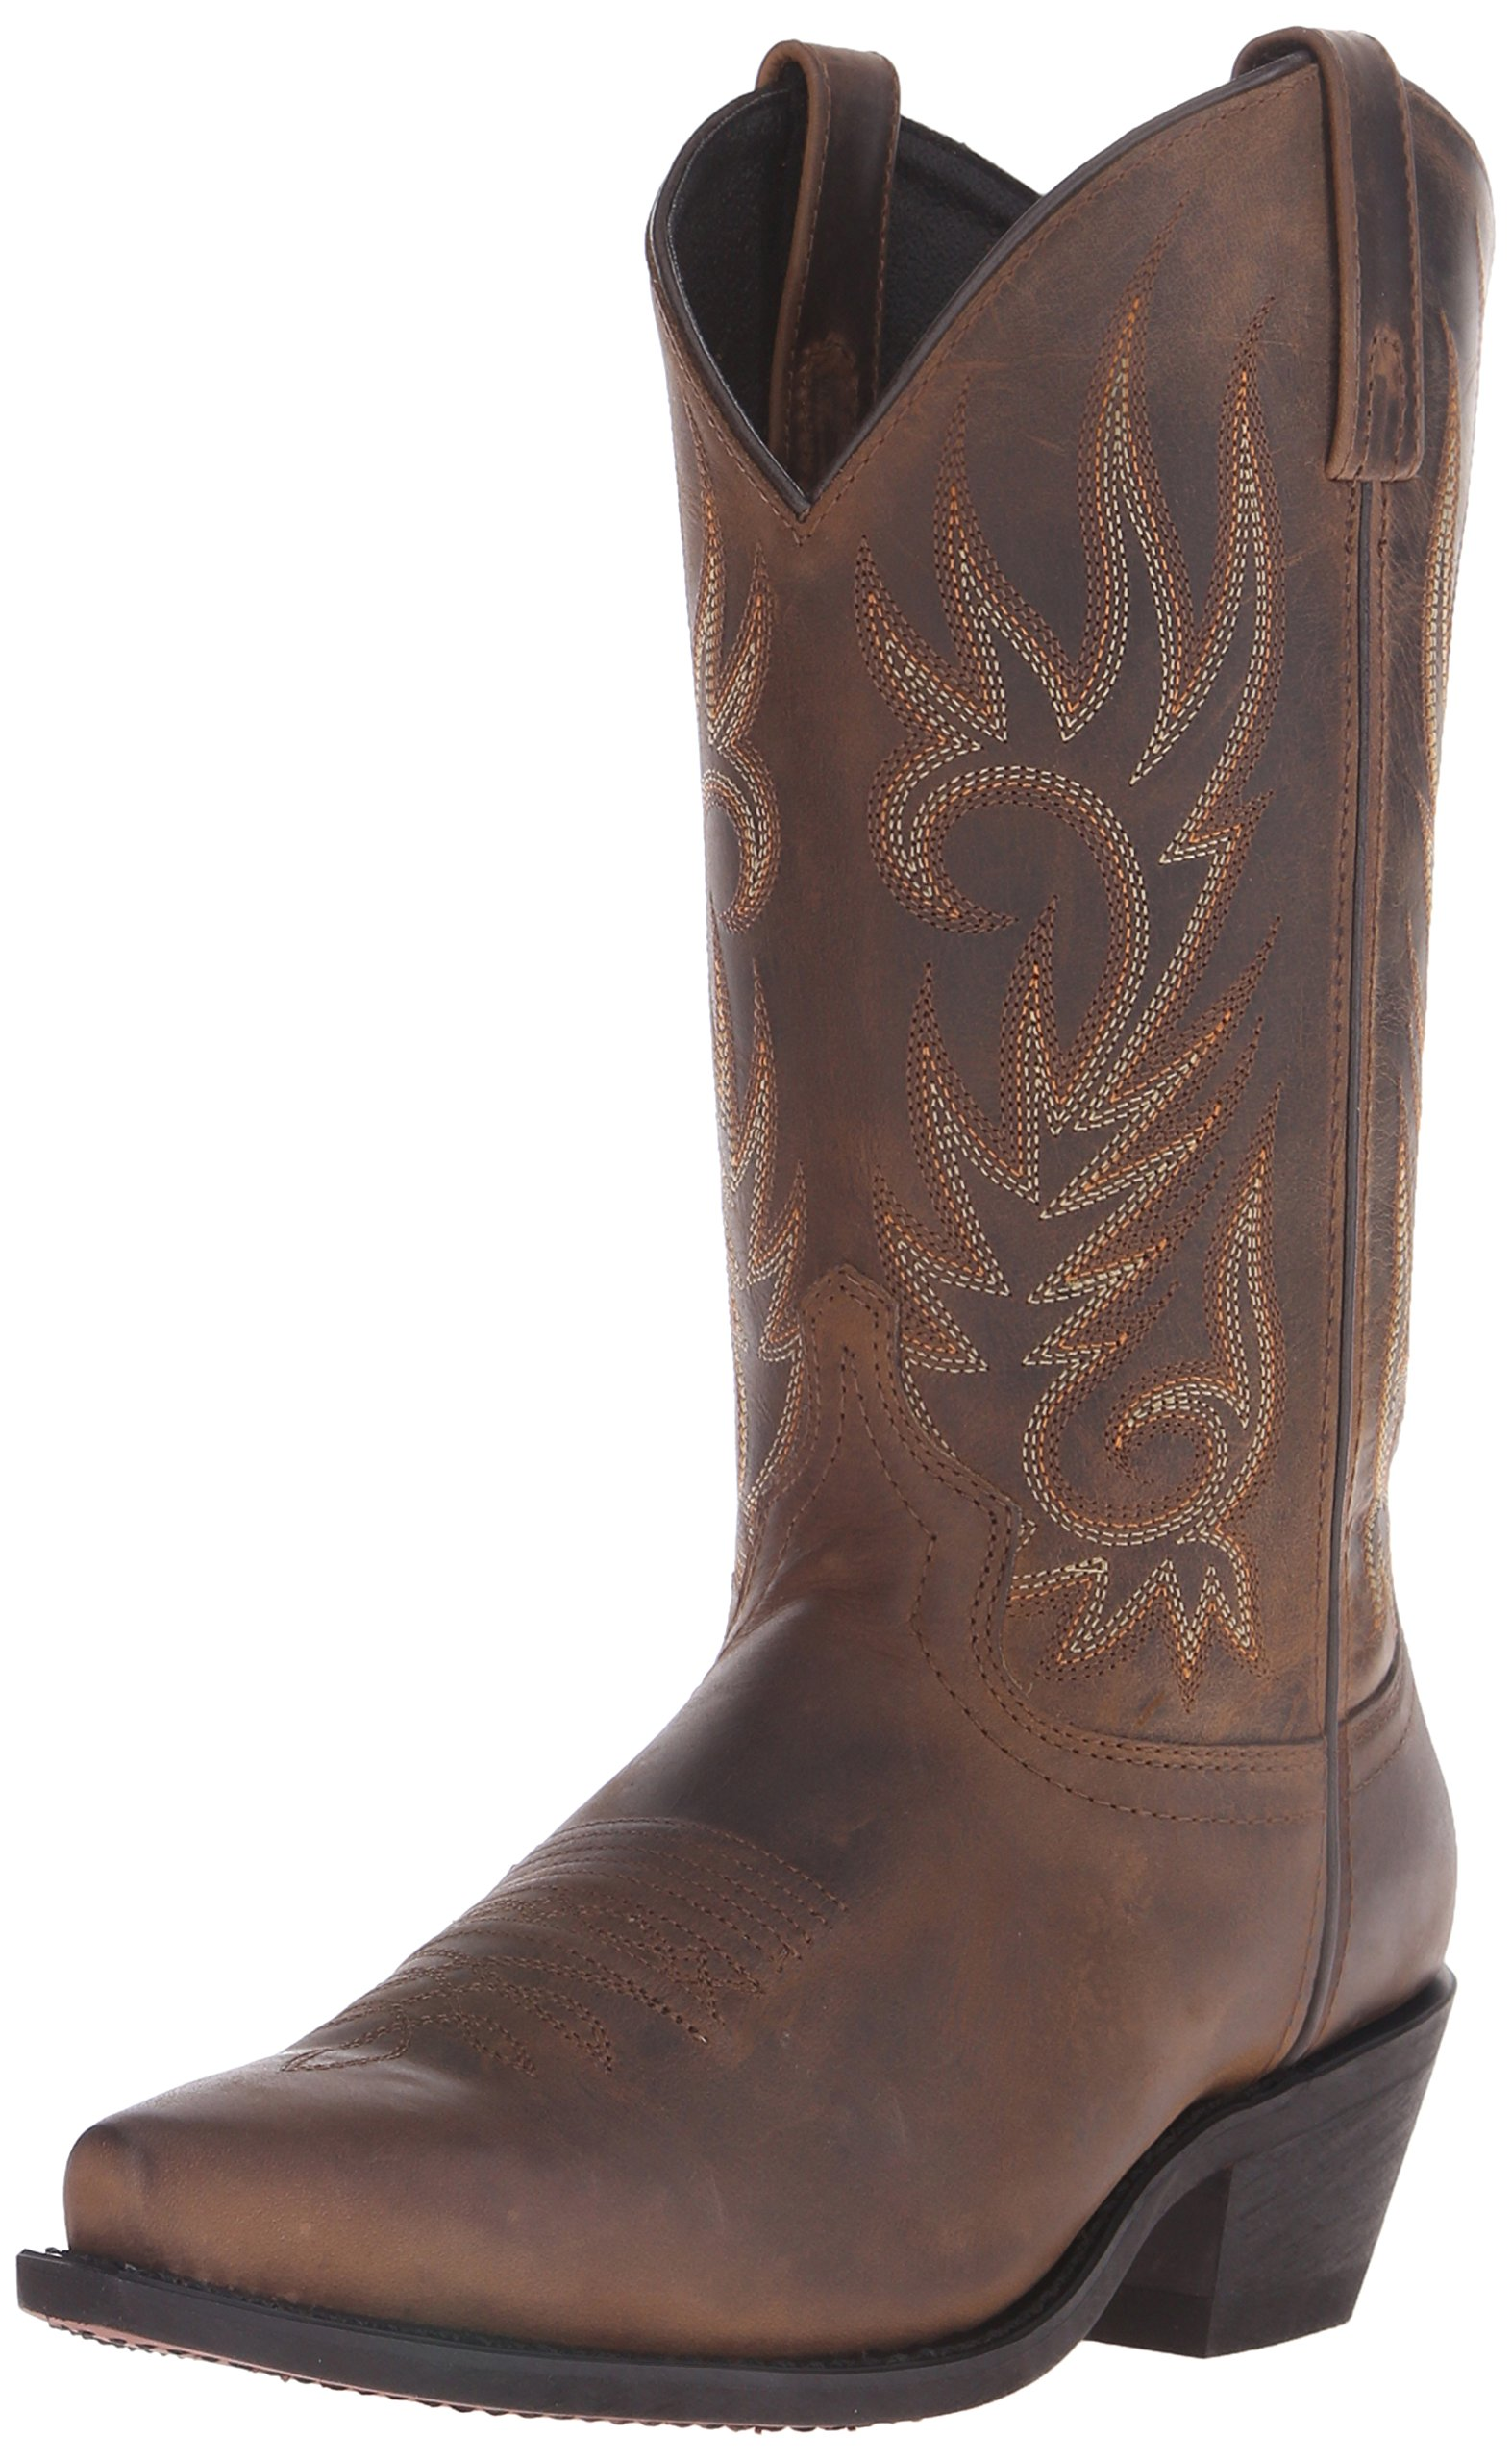 Laredo Men's Willow Creek Boot,Tan Crazyhorse,11 D (M) US by Laredo